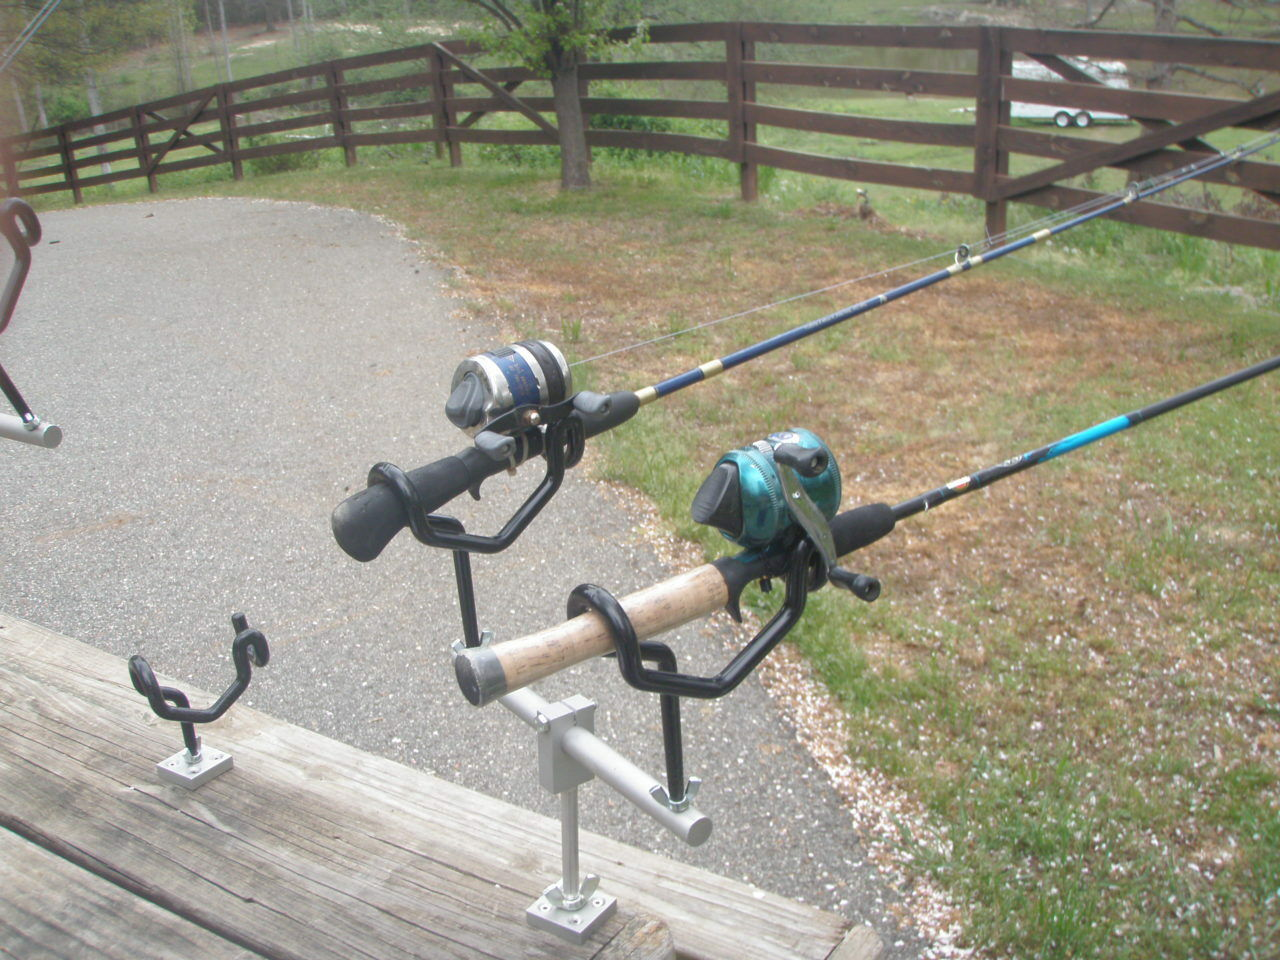 12 inch T-bar With  2 holders Crappie King All adjustable  angle Reel Fisherman  comfortably